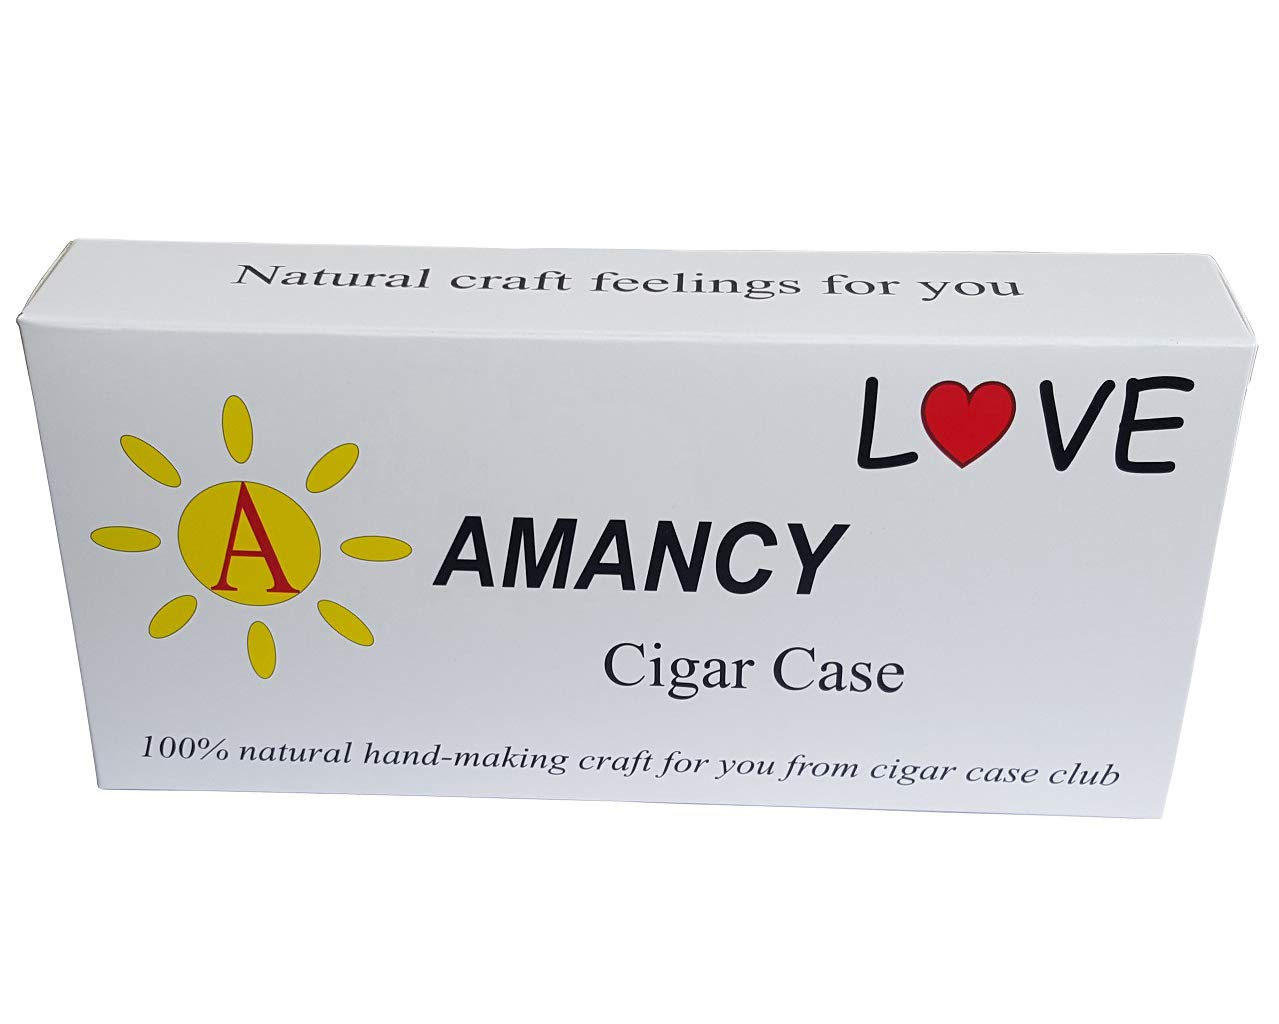 Amazon.com: Caso de cigarrillos amancy, Marrón, 1: Health ...